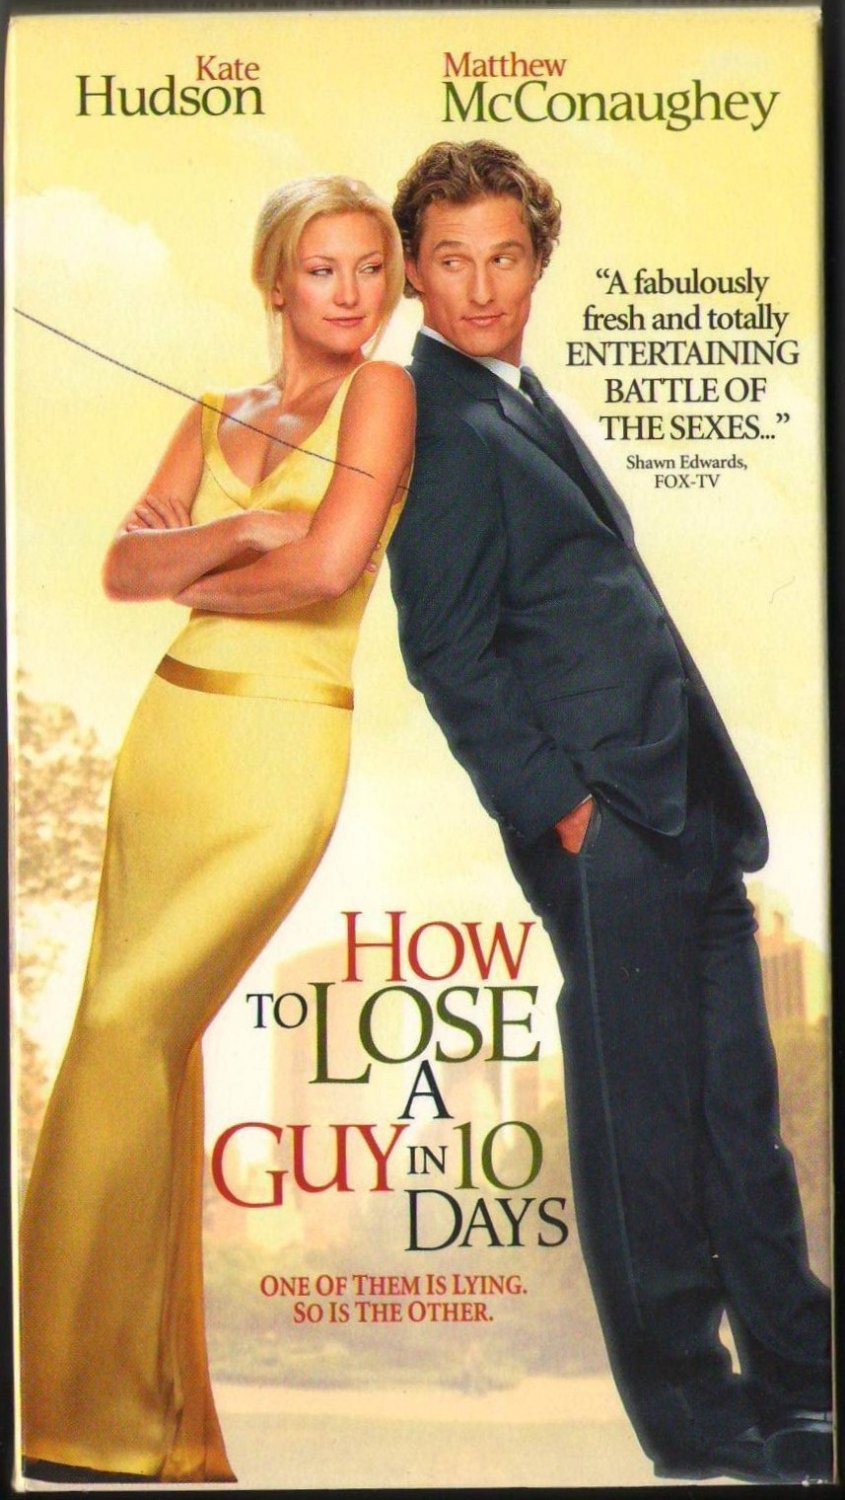 How To Lose A Guy In 10 Days Kate Hudson Matthew McConaughey VHS Tape 079219344X PG